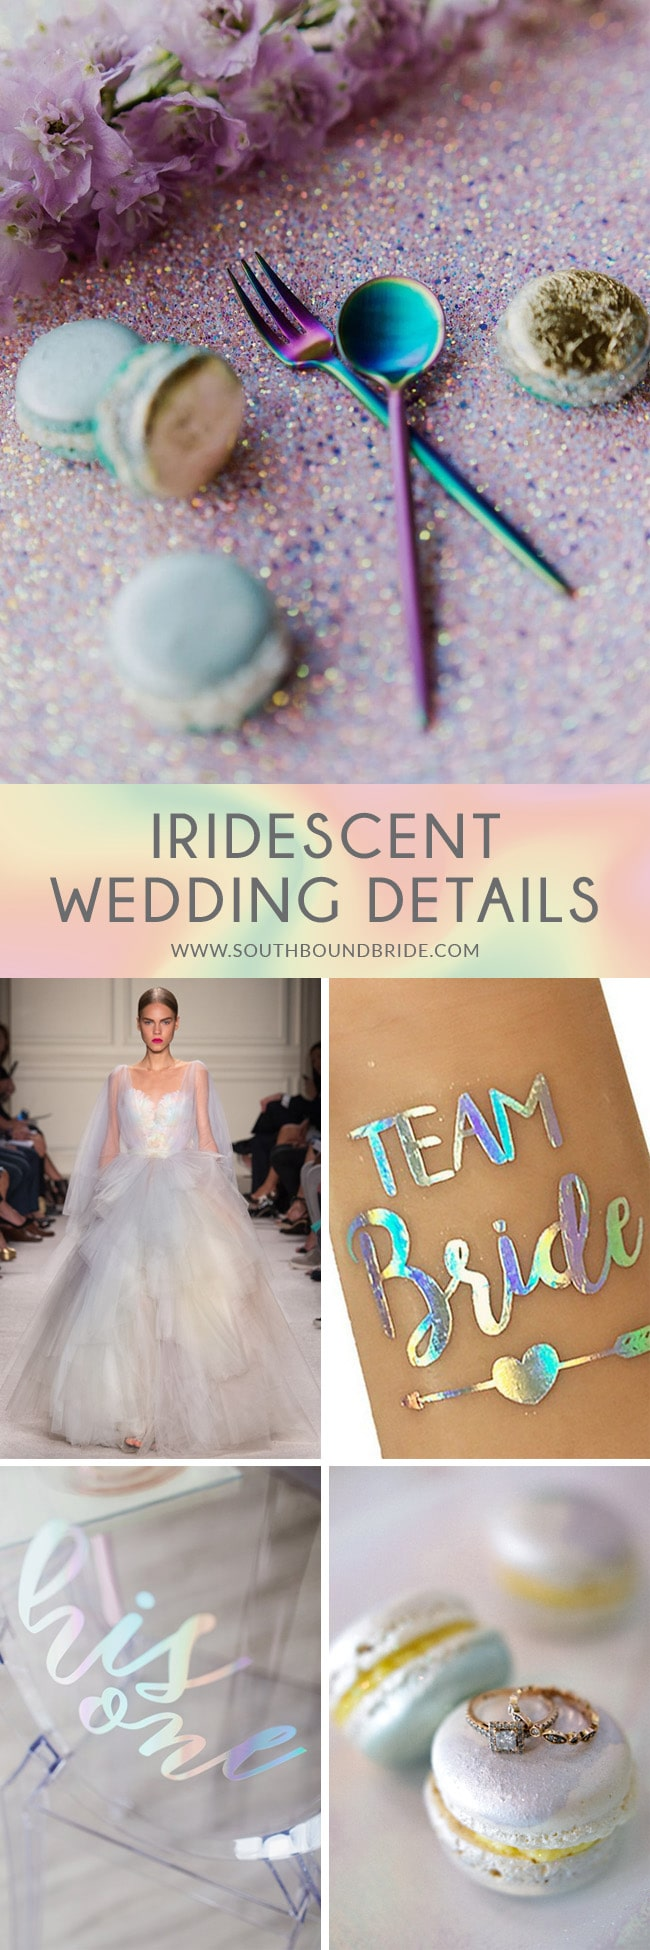 15 Iridescent Wedding Details to Love | SouthBound Bride